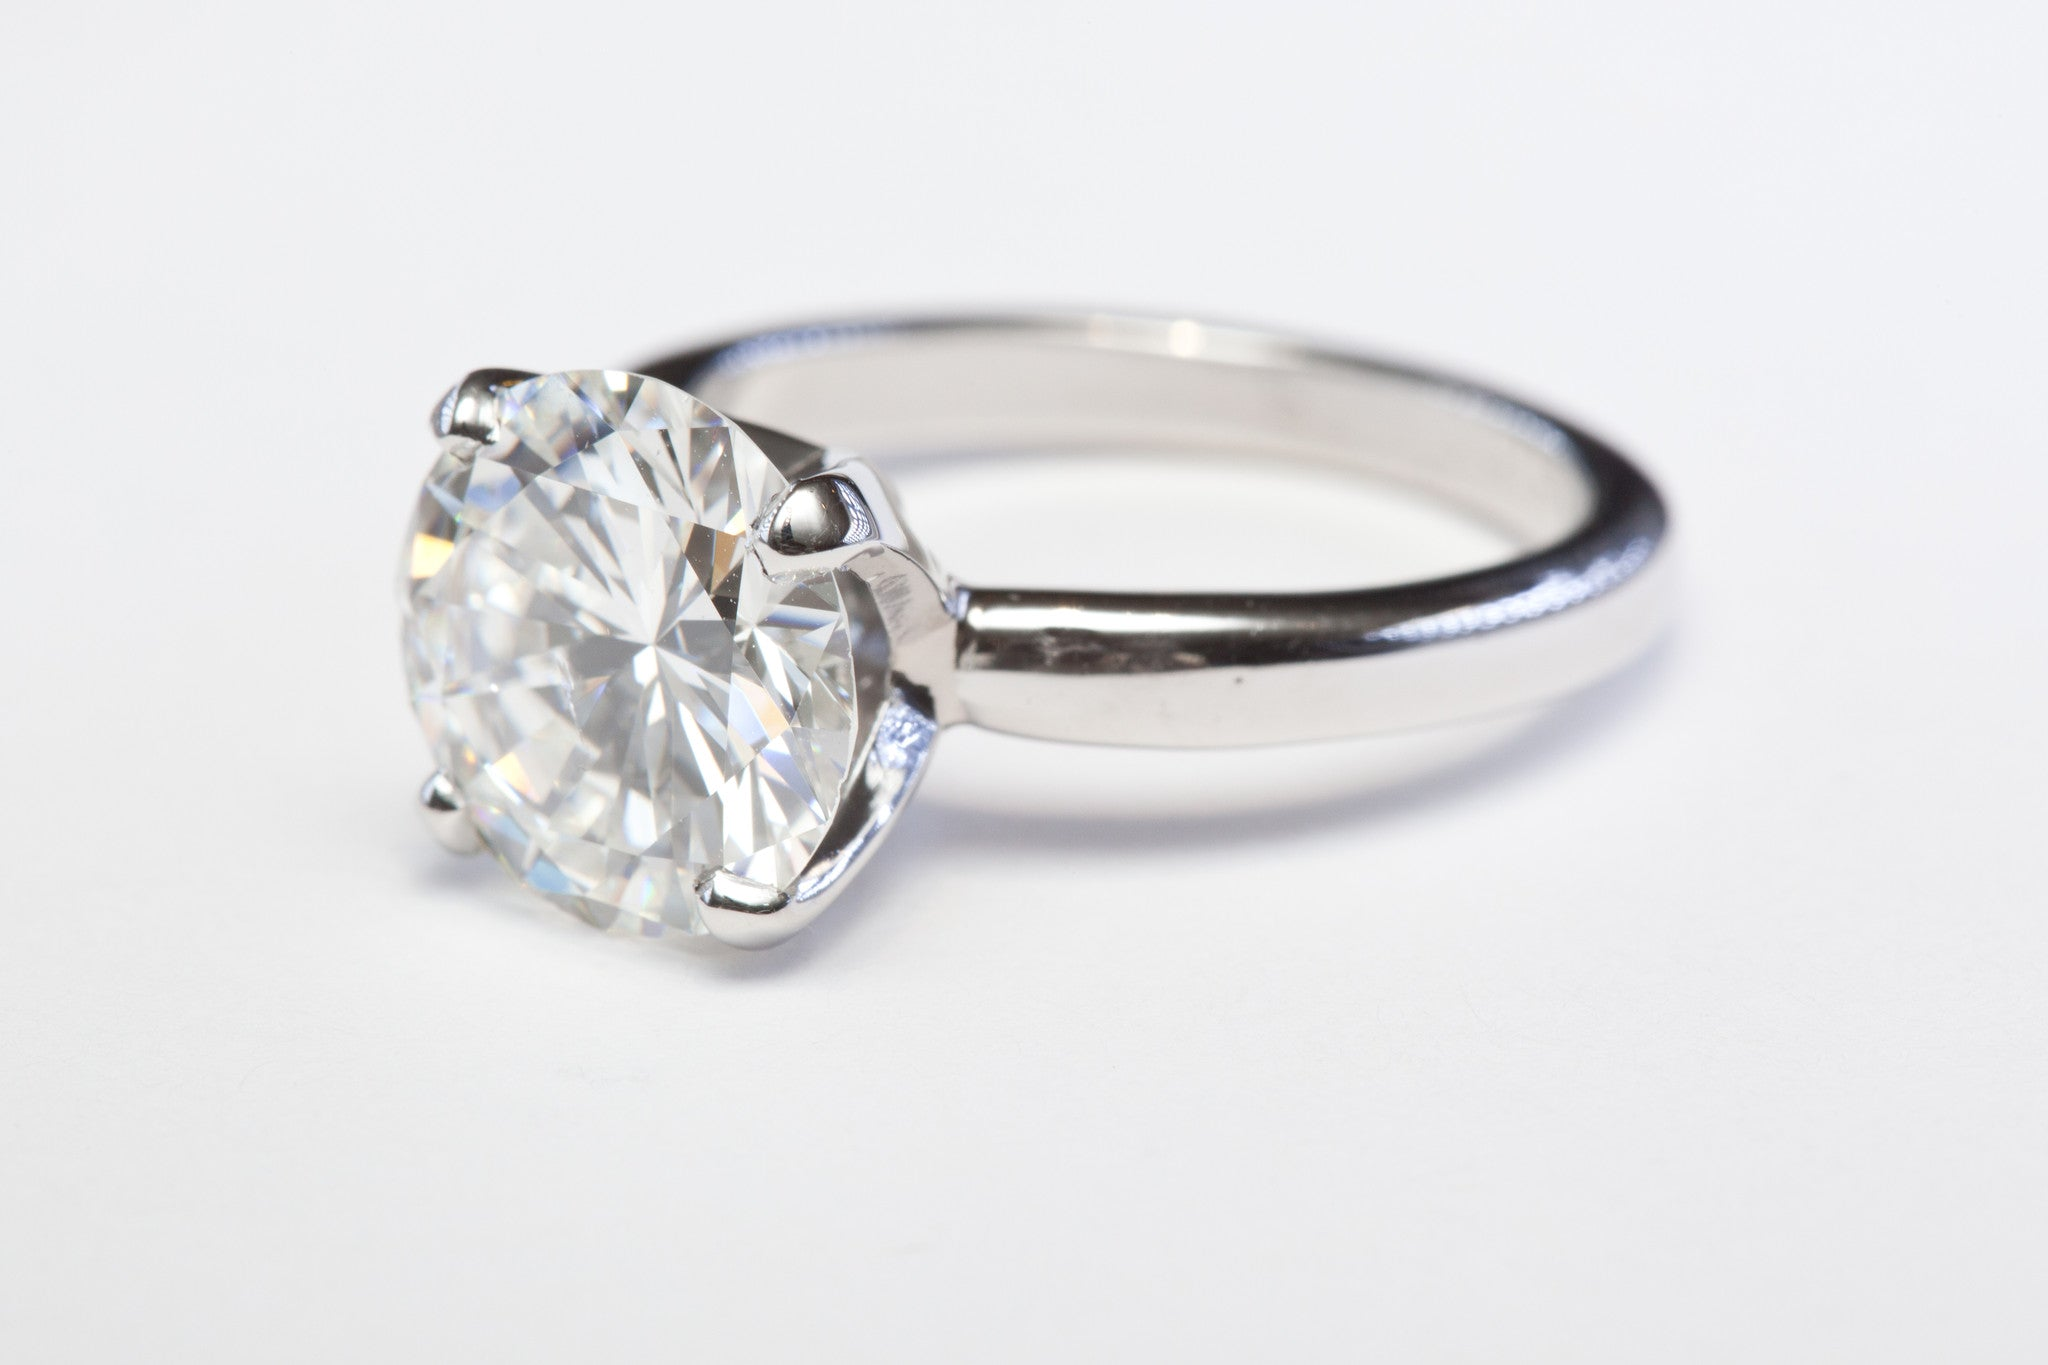 Side view 4.09 Solitaire Diamond Ring